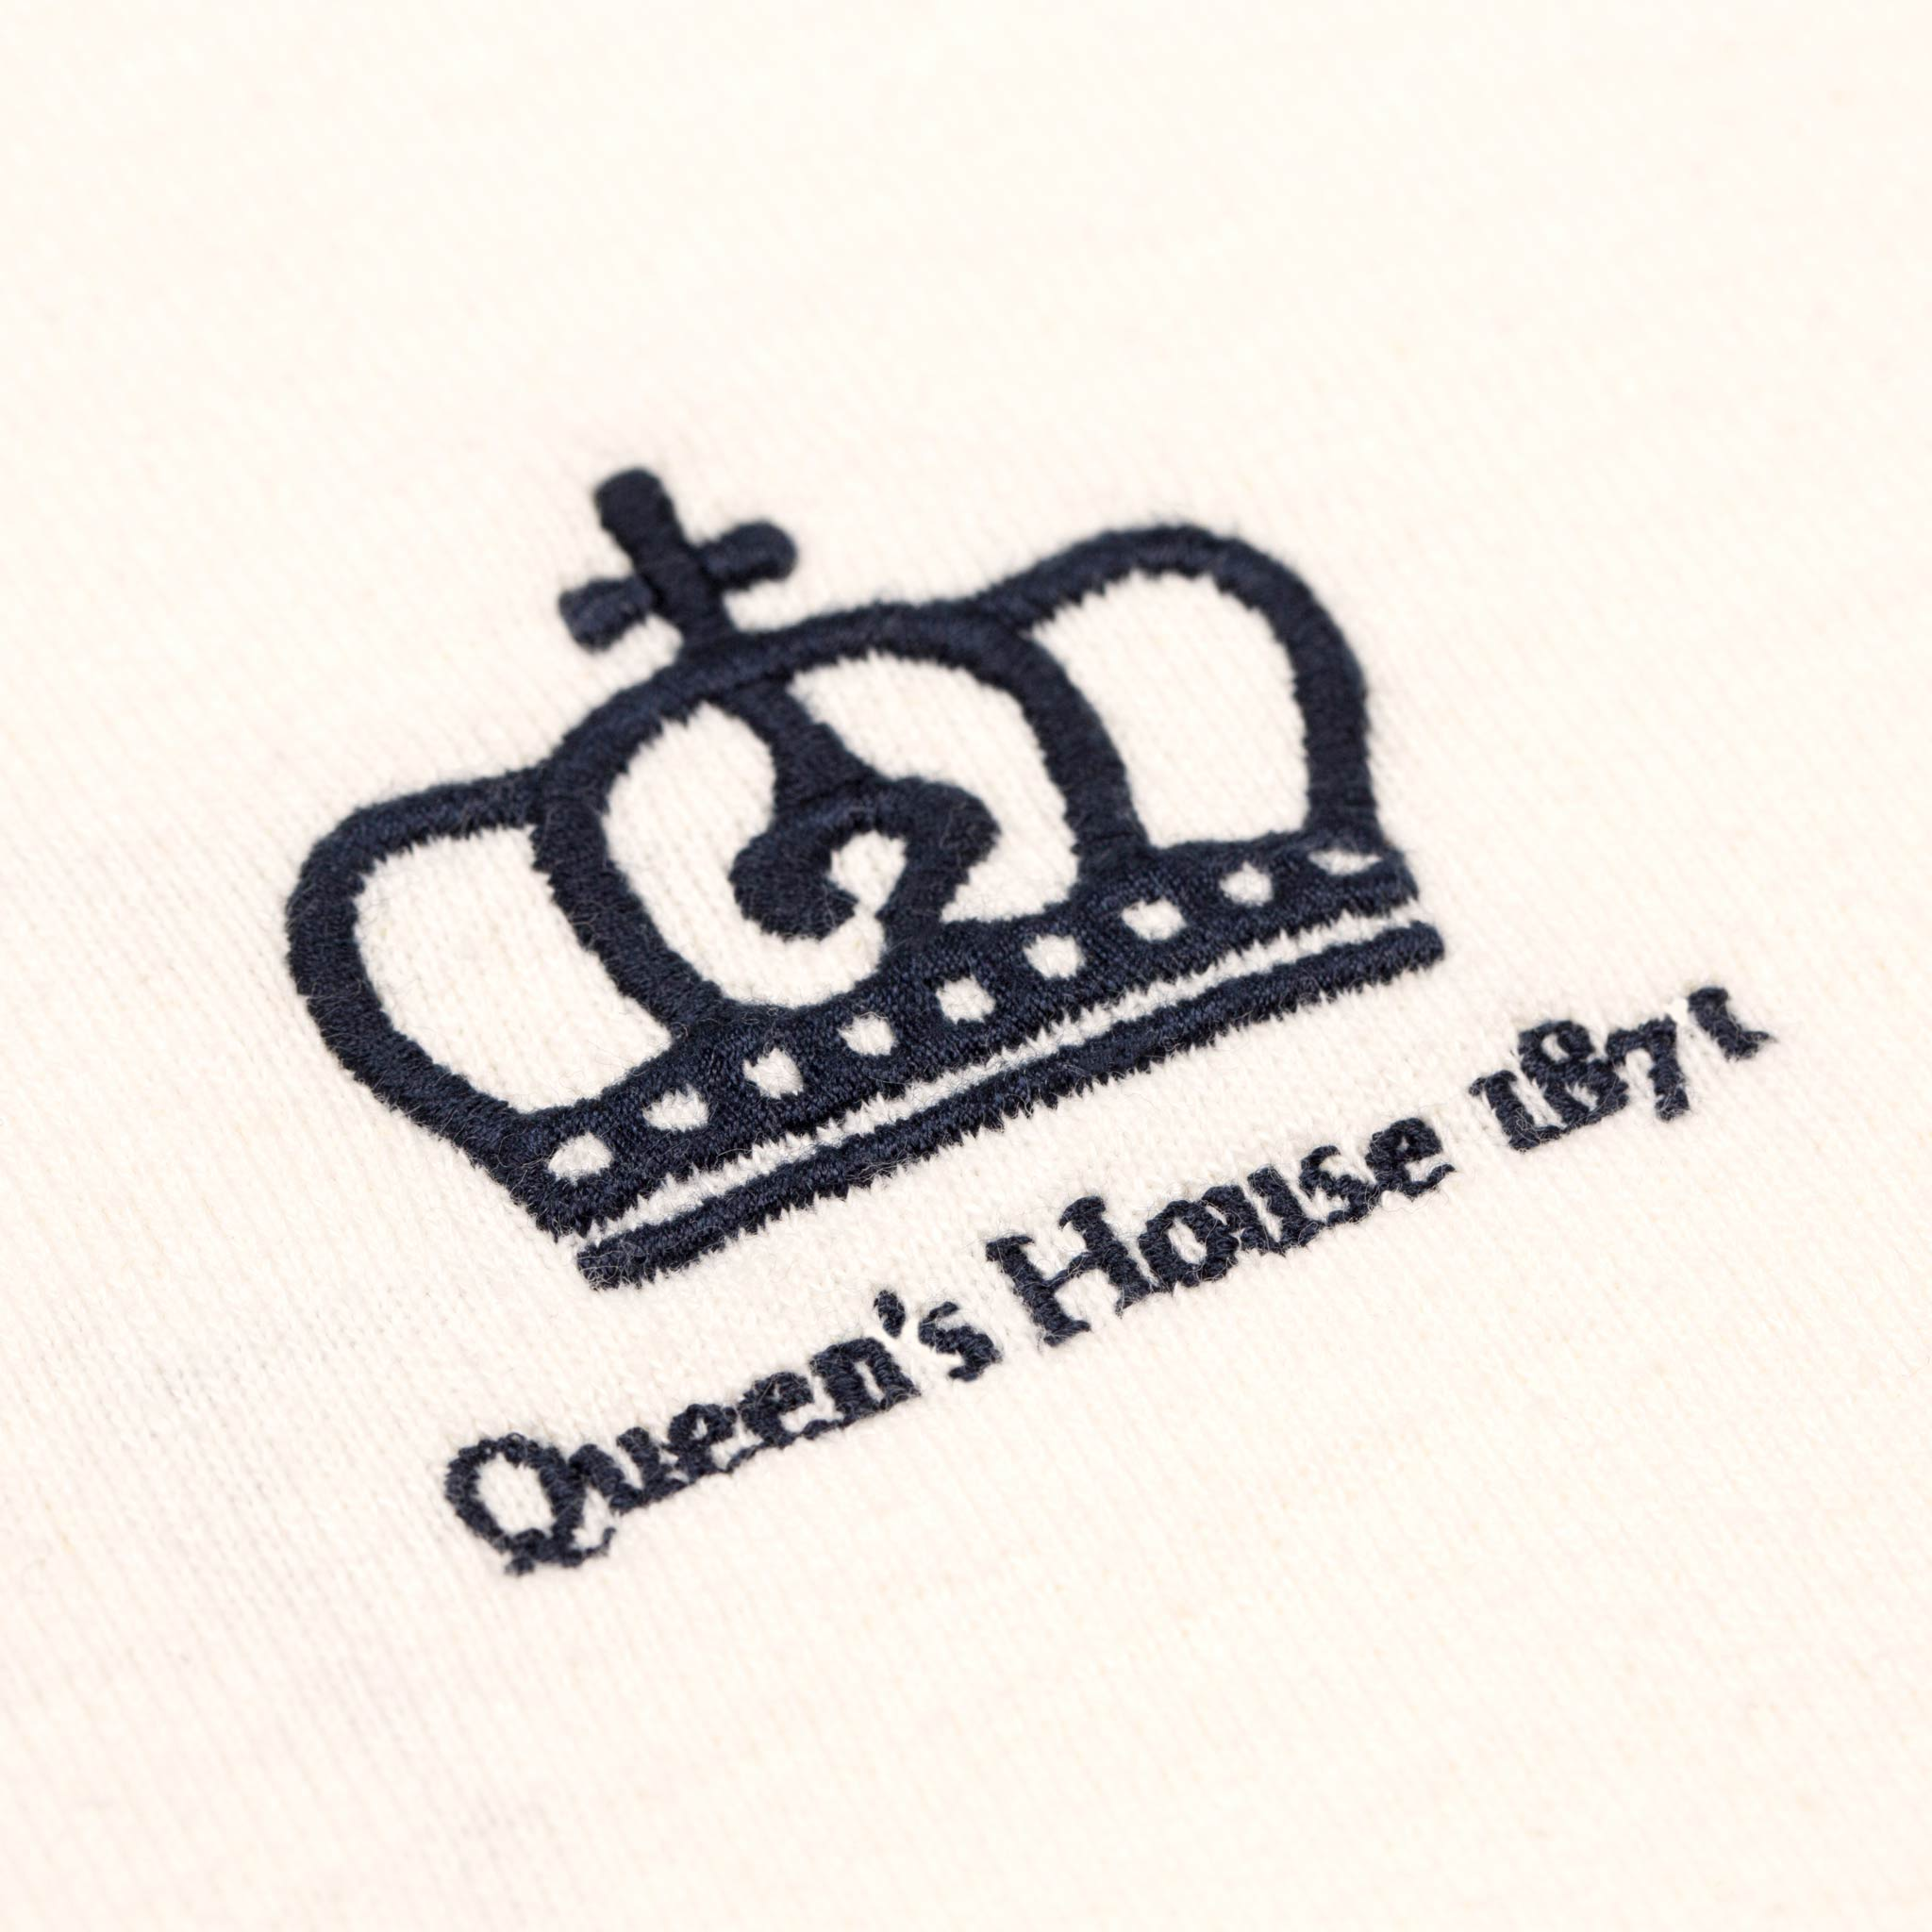 Queen's House 1871 Limited Edition Rugby Shirt Logo